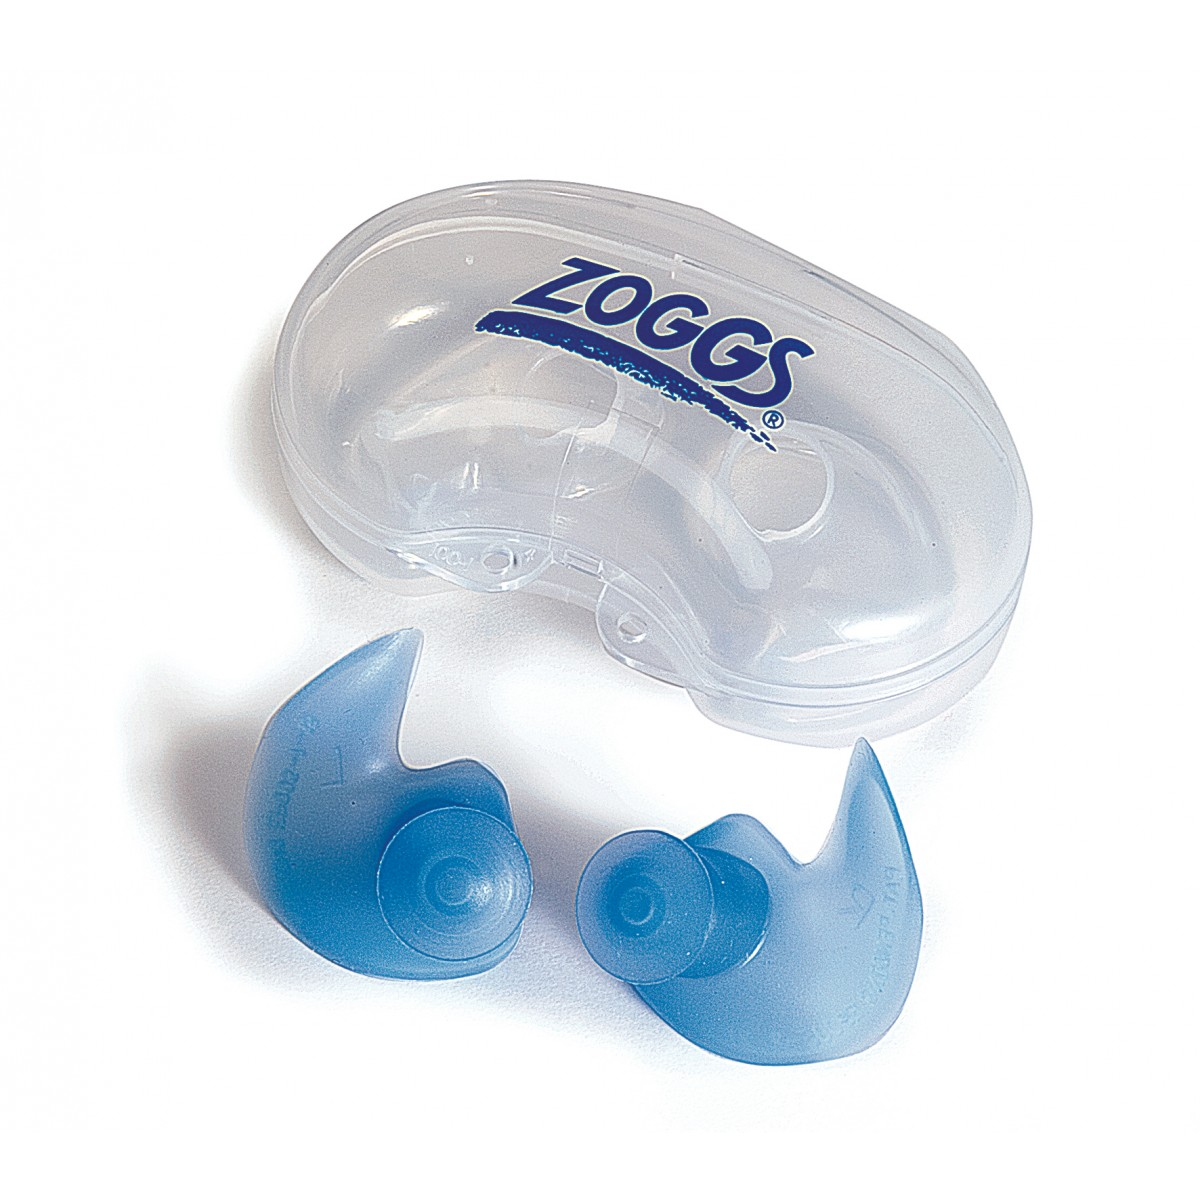 Zoggs Swimming Aqua Ear Plugs - Junior